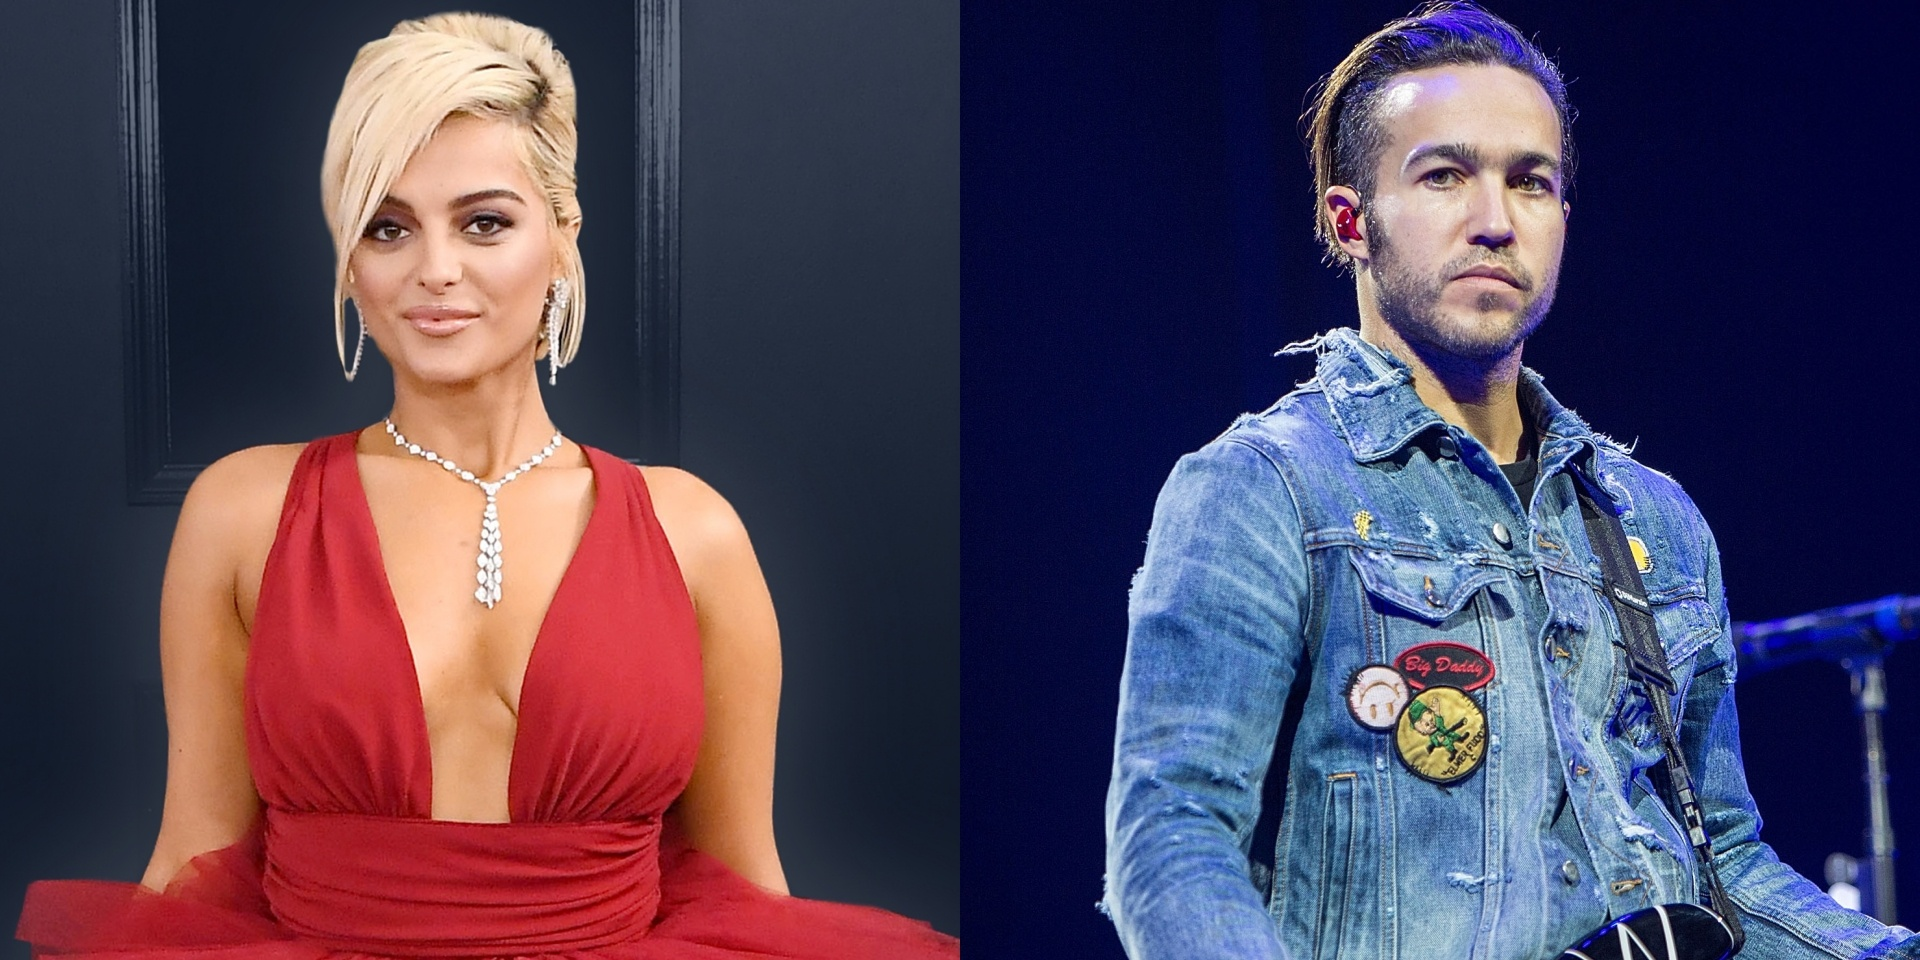 Bebe Rexha, Pete Wentz of Fall Out Boy tease collaboration